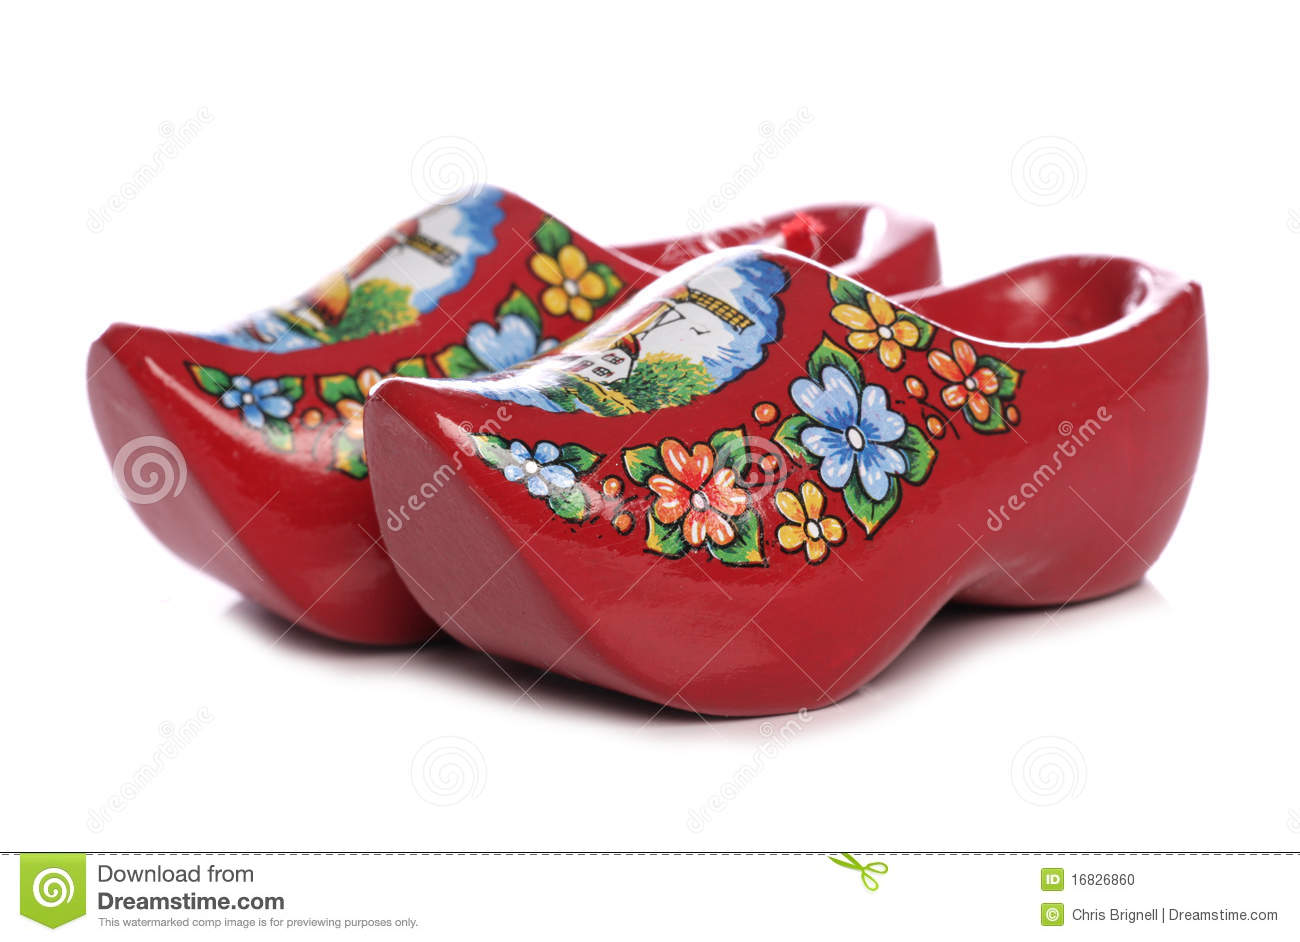 Red Dutch Clogs Stock Photo - Image: 16826860